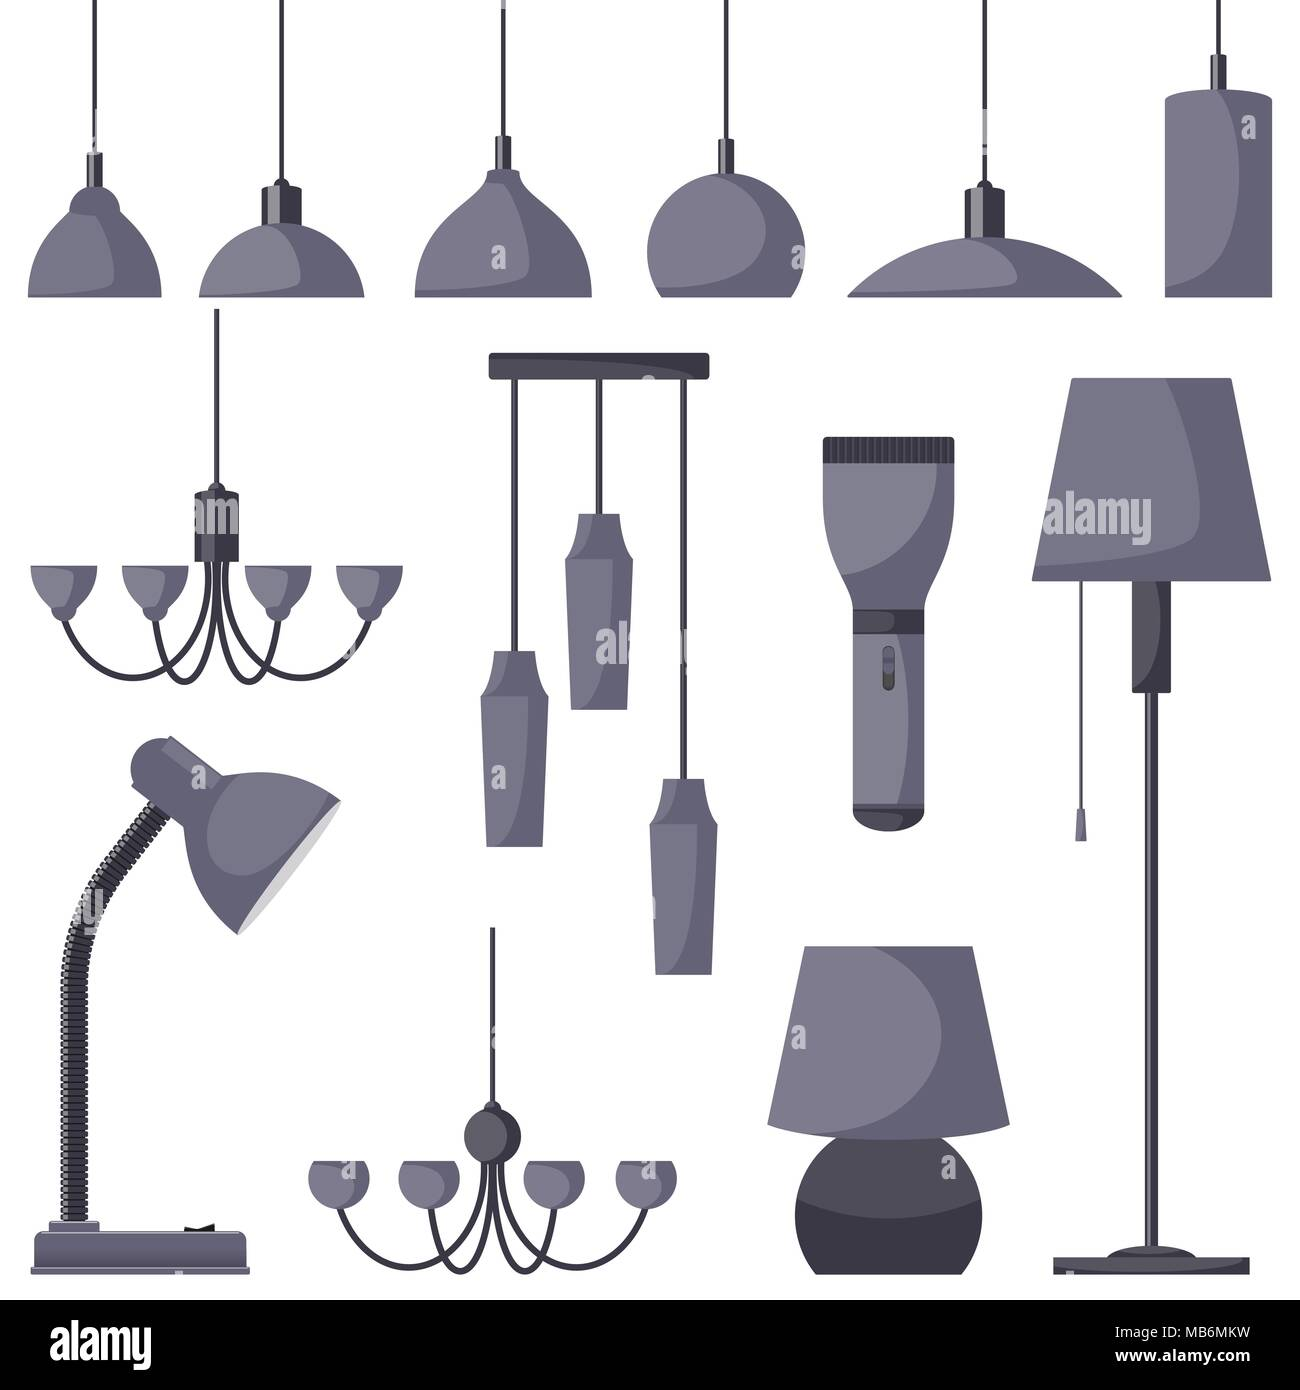 Lamps of different types set chandeliers lamps bulbs table lamp lamps of different types set chandeliers lamps bulbs table lamp flashlight floor lamp elements of modern interior vector illustration in fla aloadofball Image collections